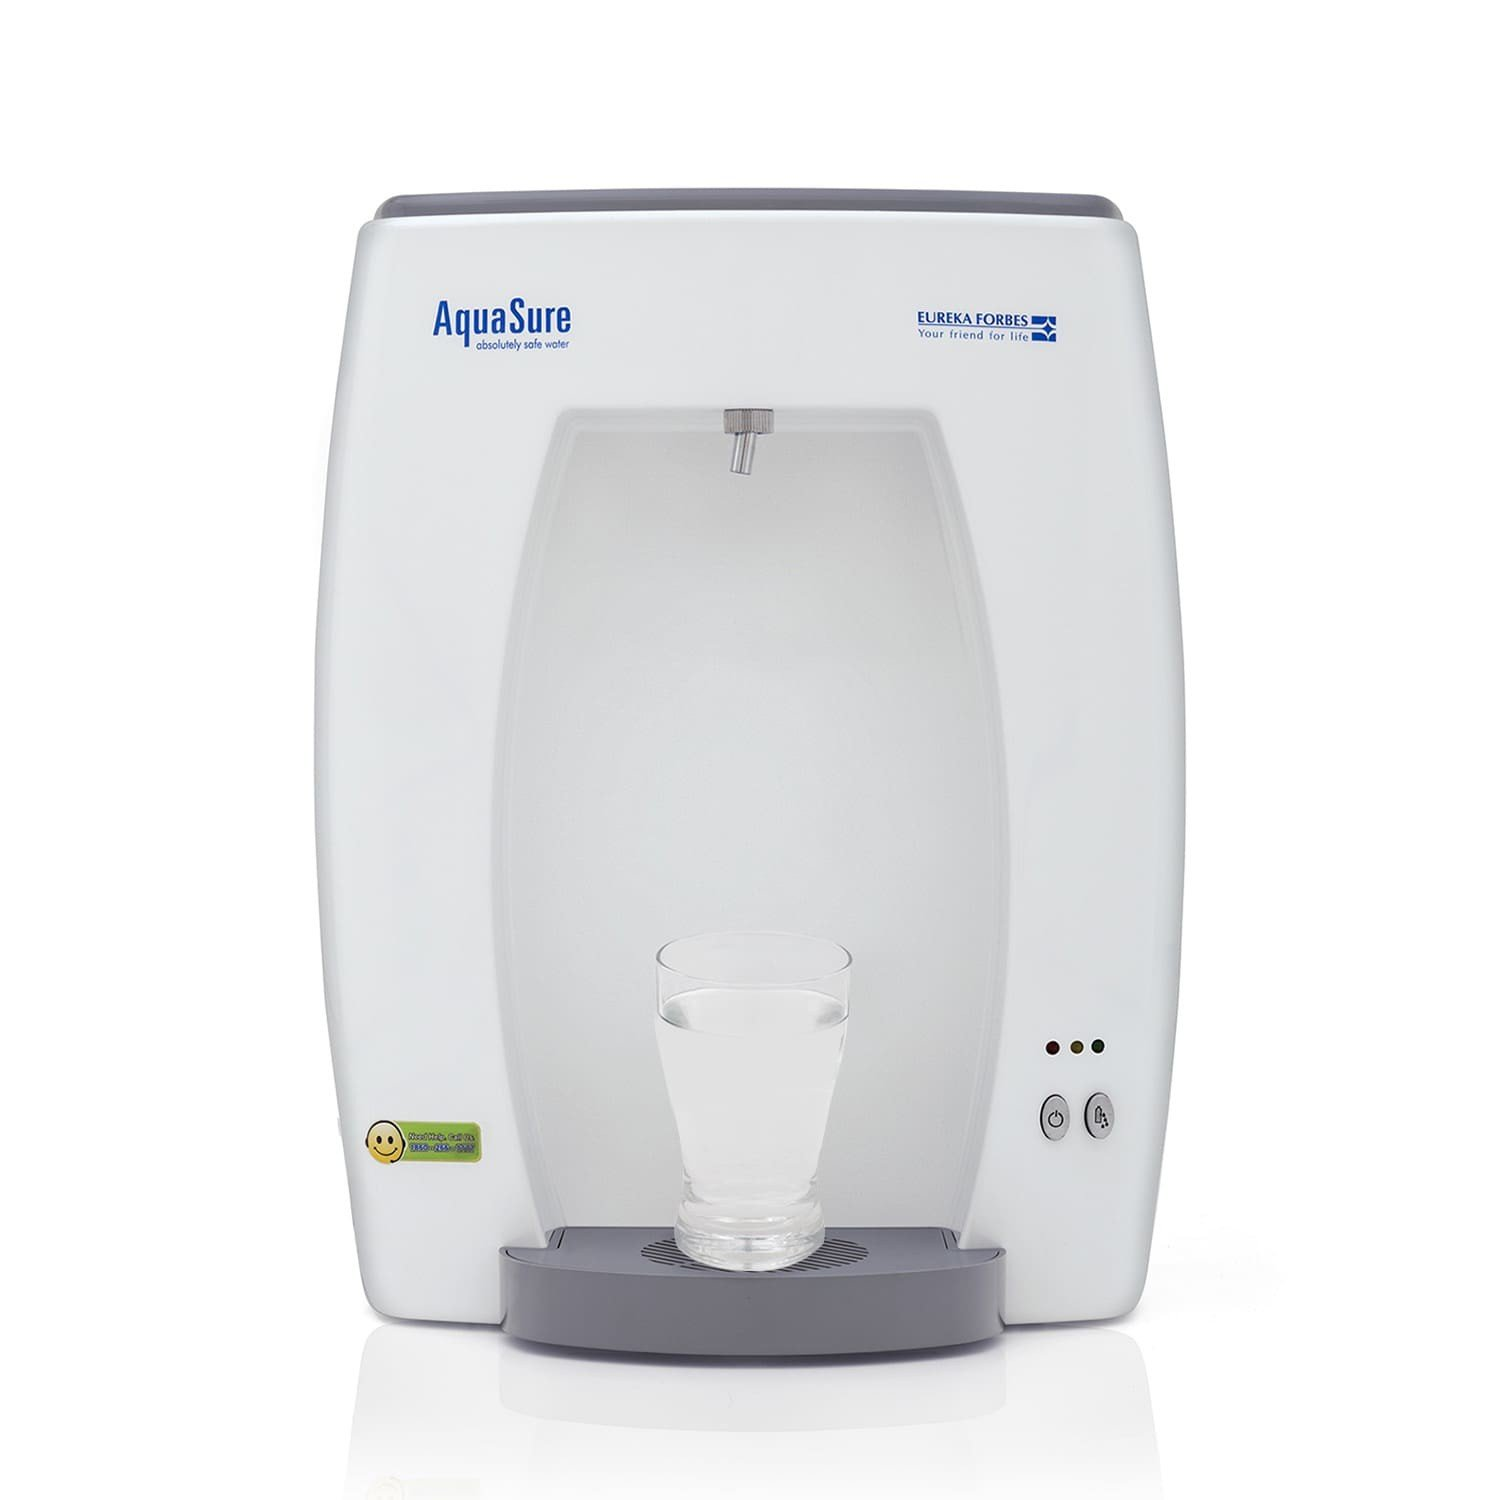 Eureka Forbes Aquasure UV Water Purifier